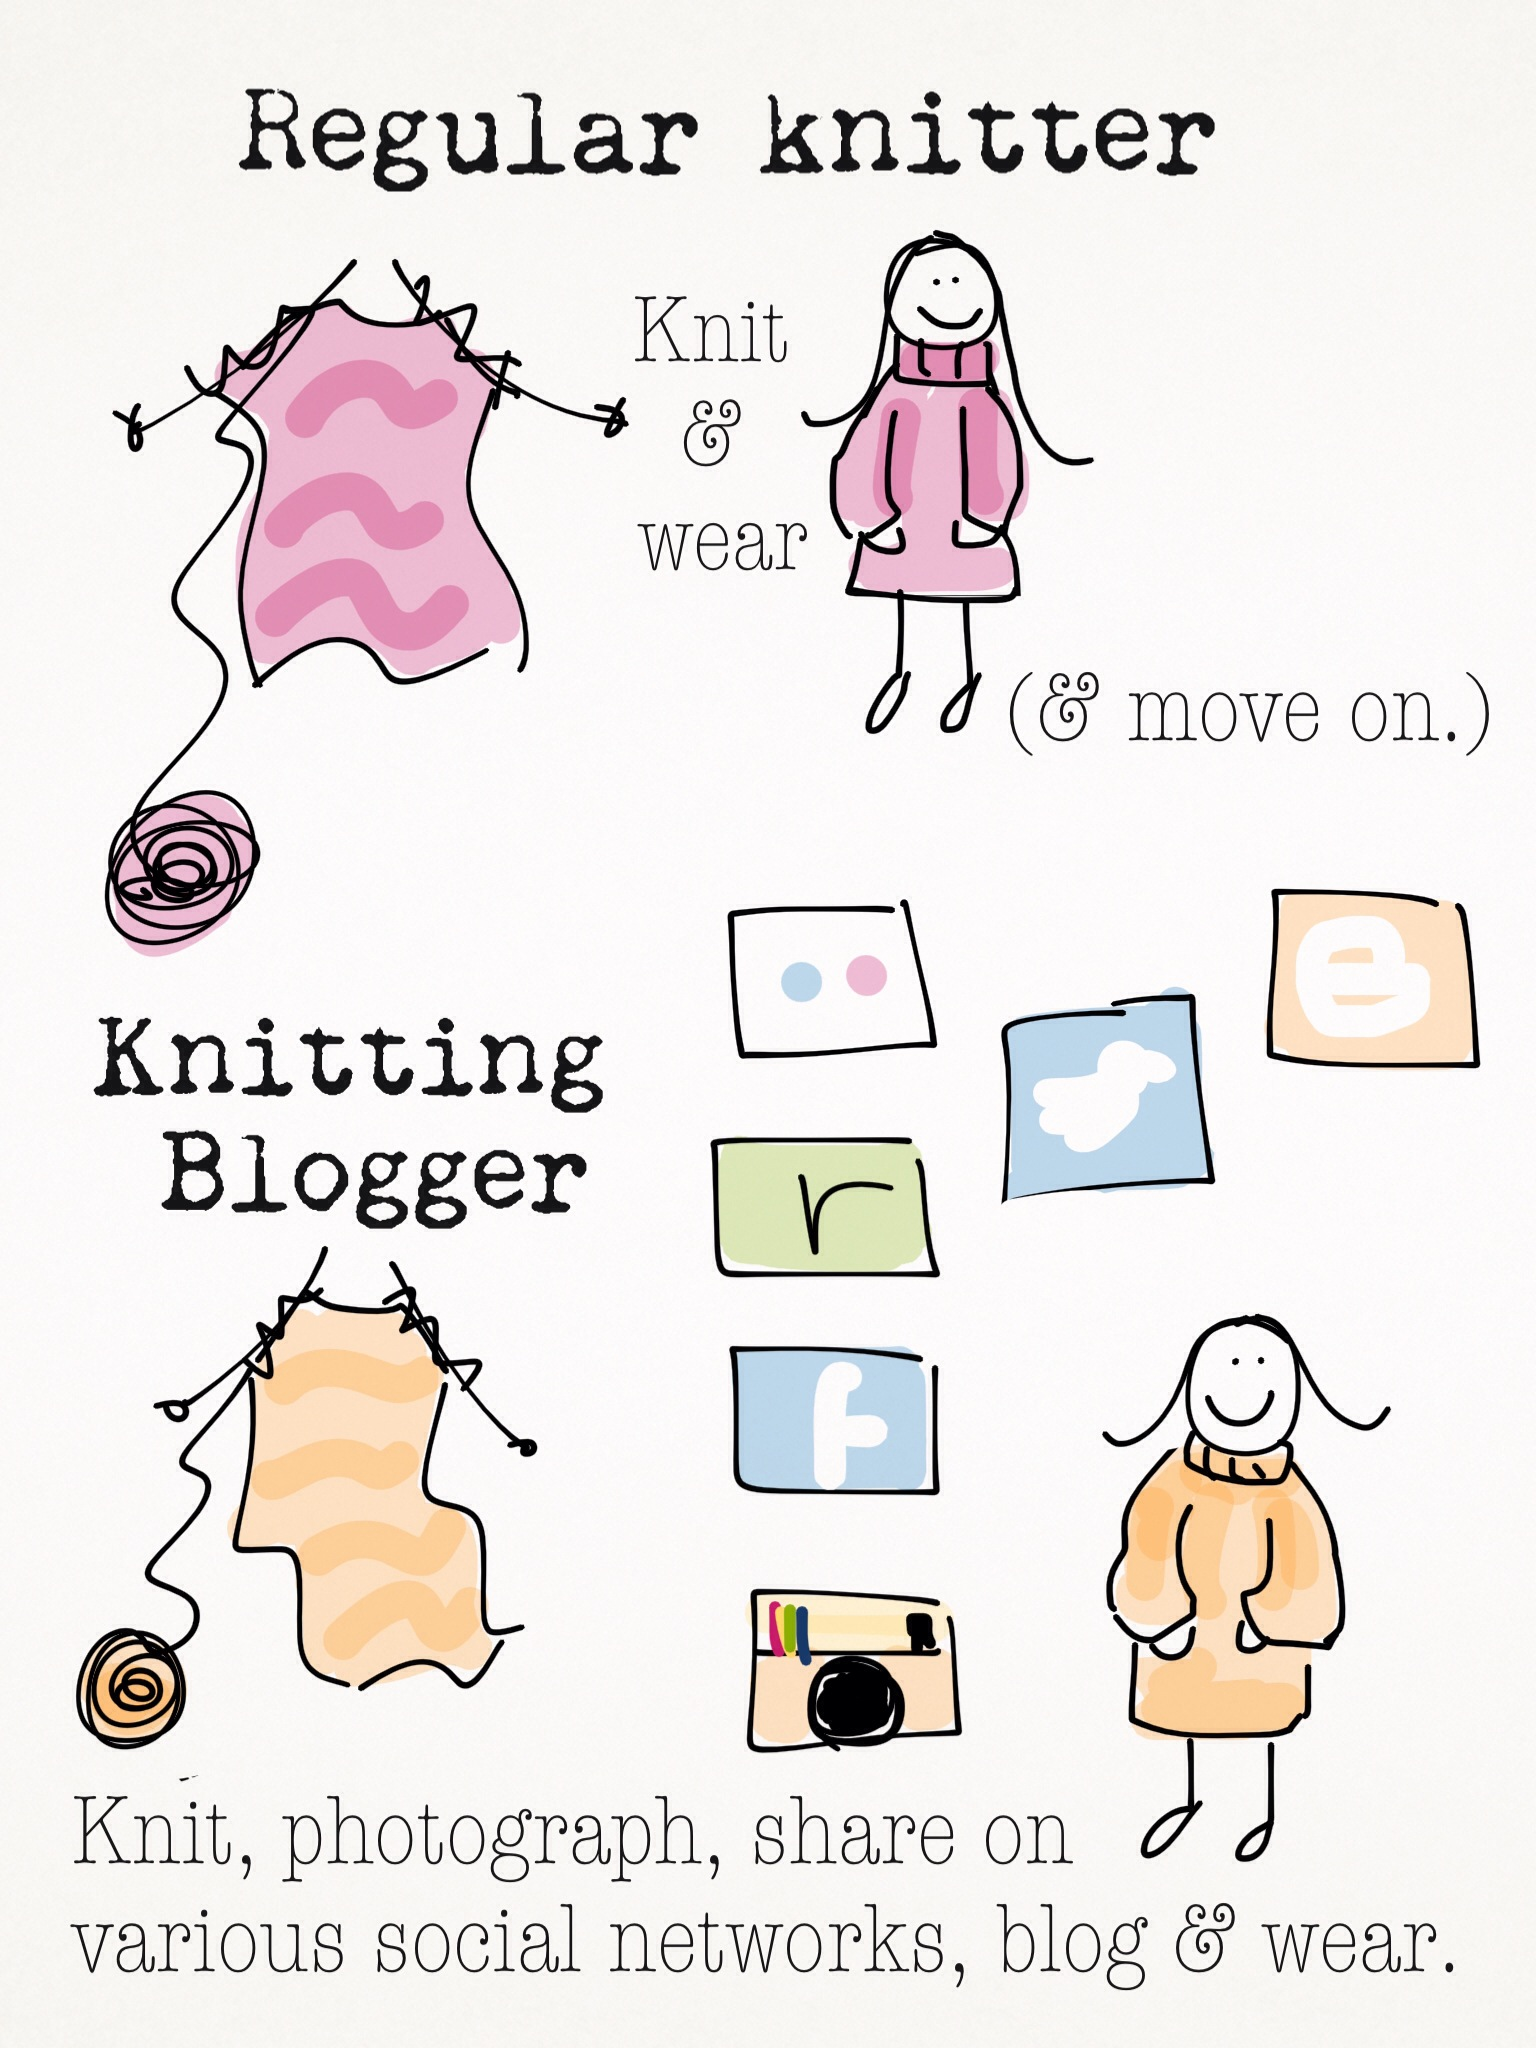 The online community of a knitting blogger